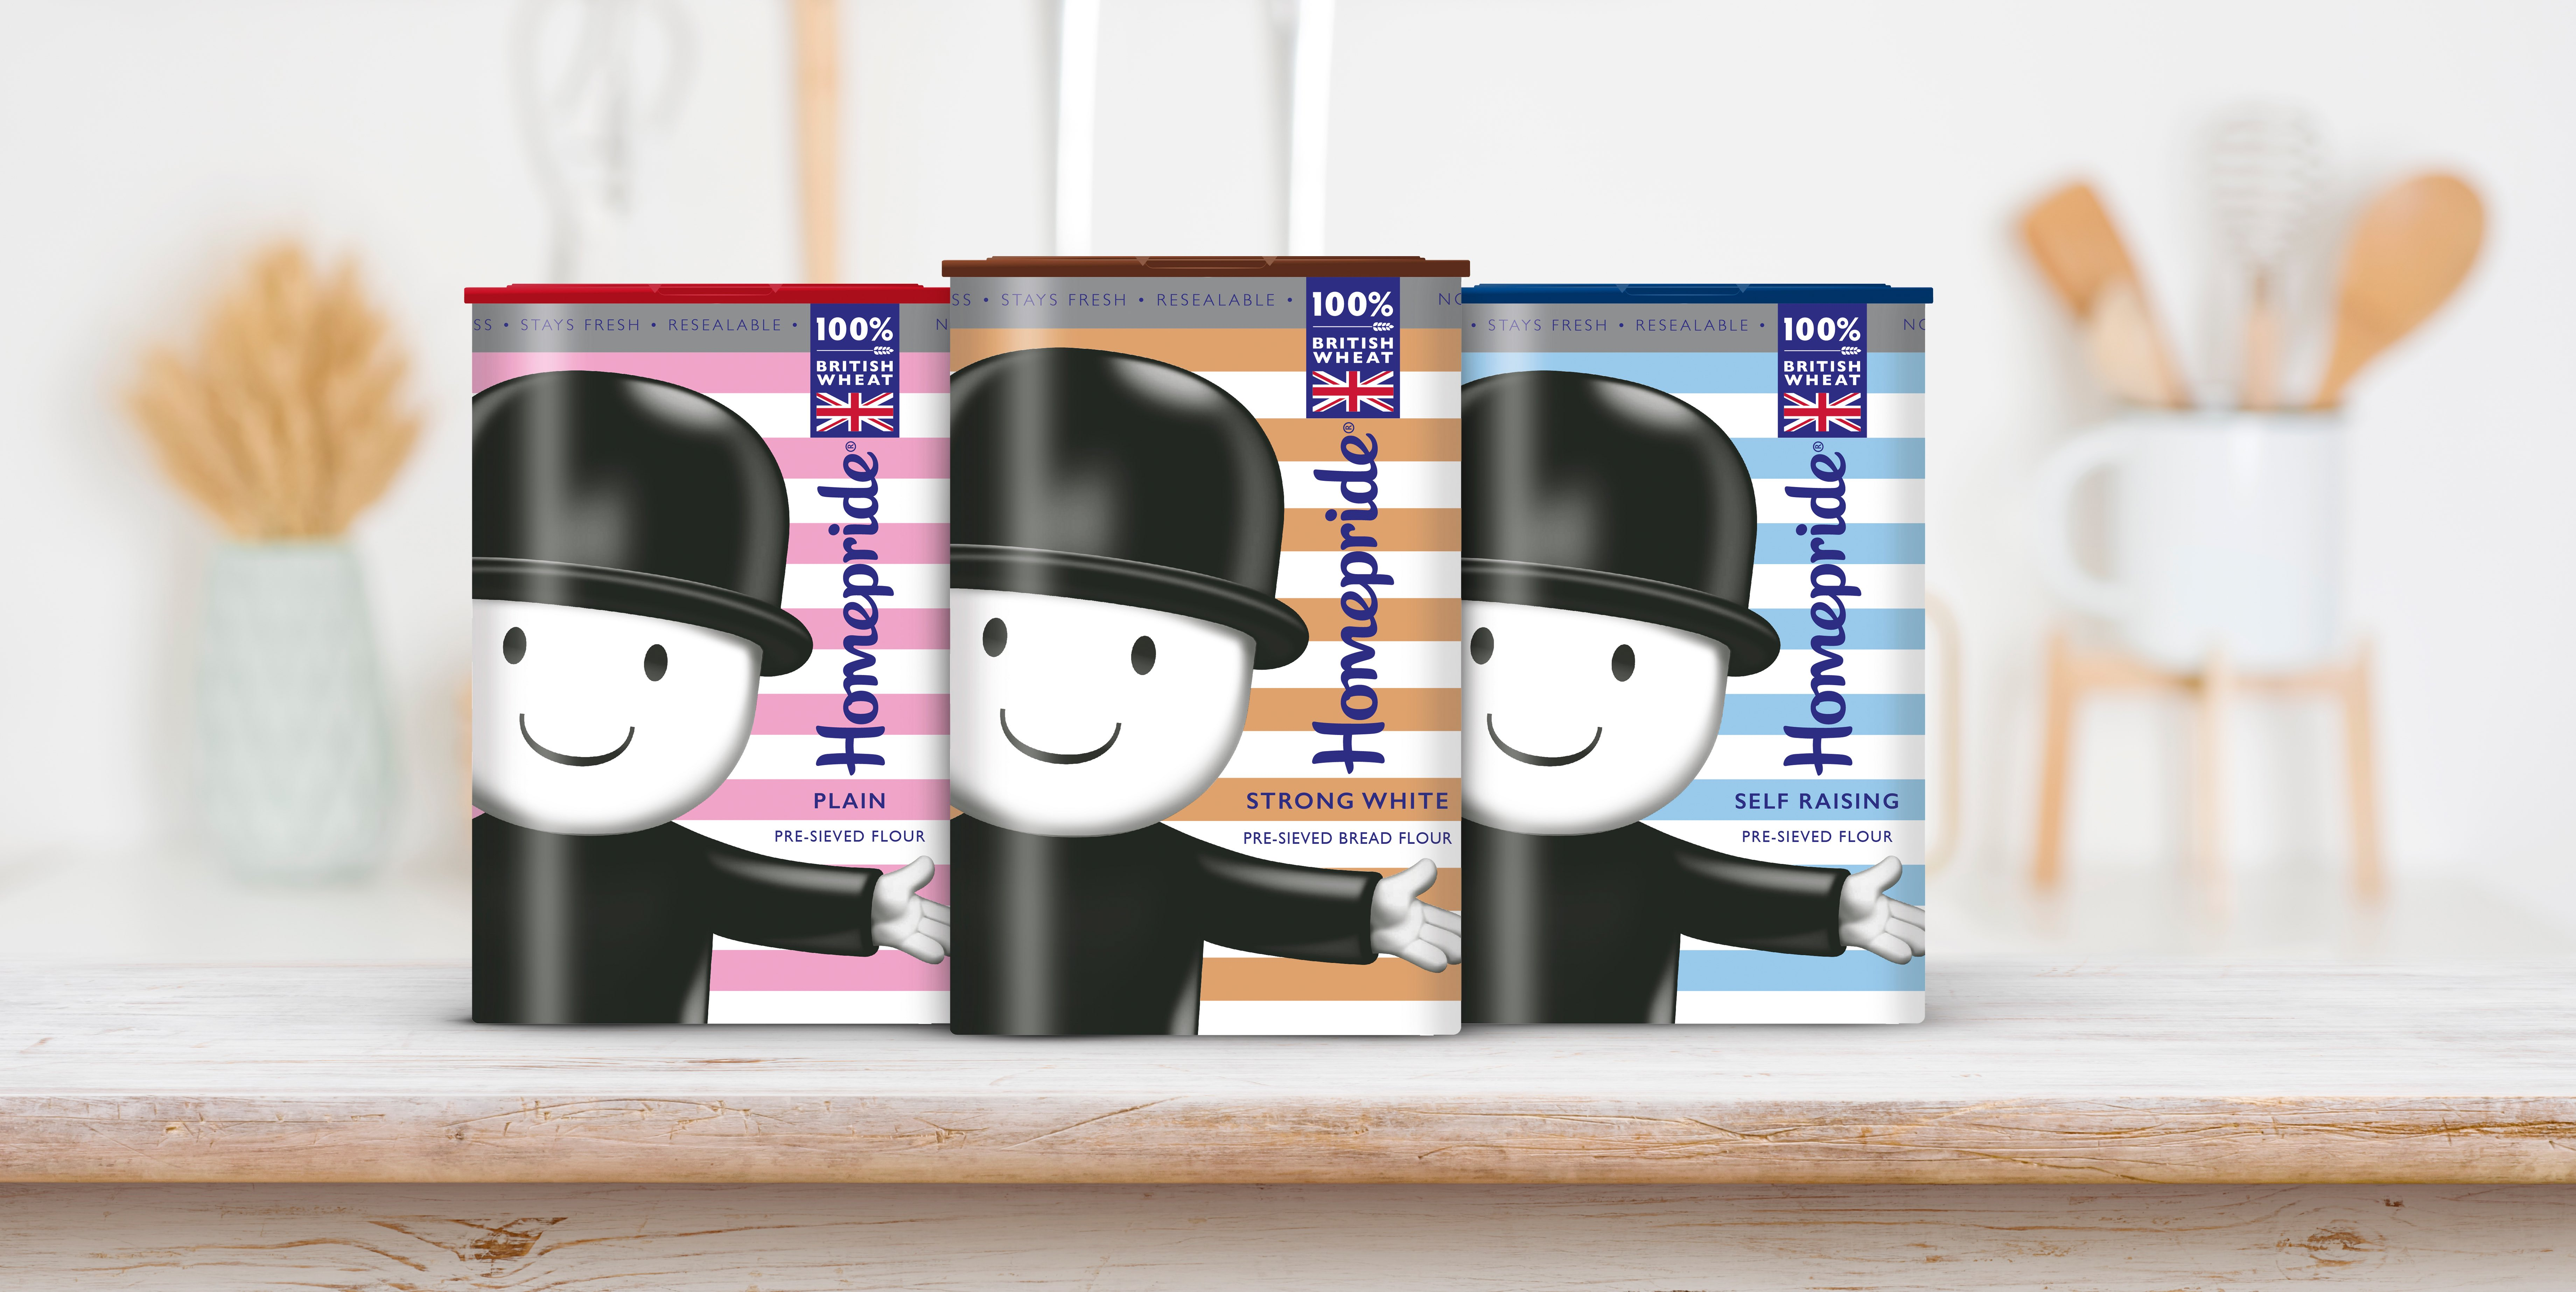 Wowme Delivers a Design Make-Over for Homepride's Fred Packaging